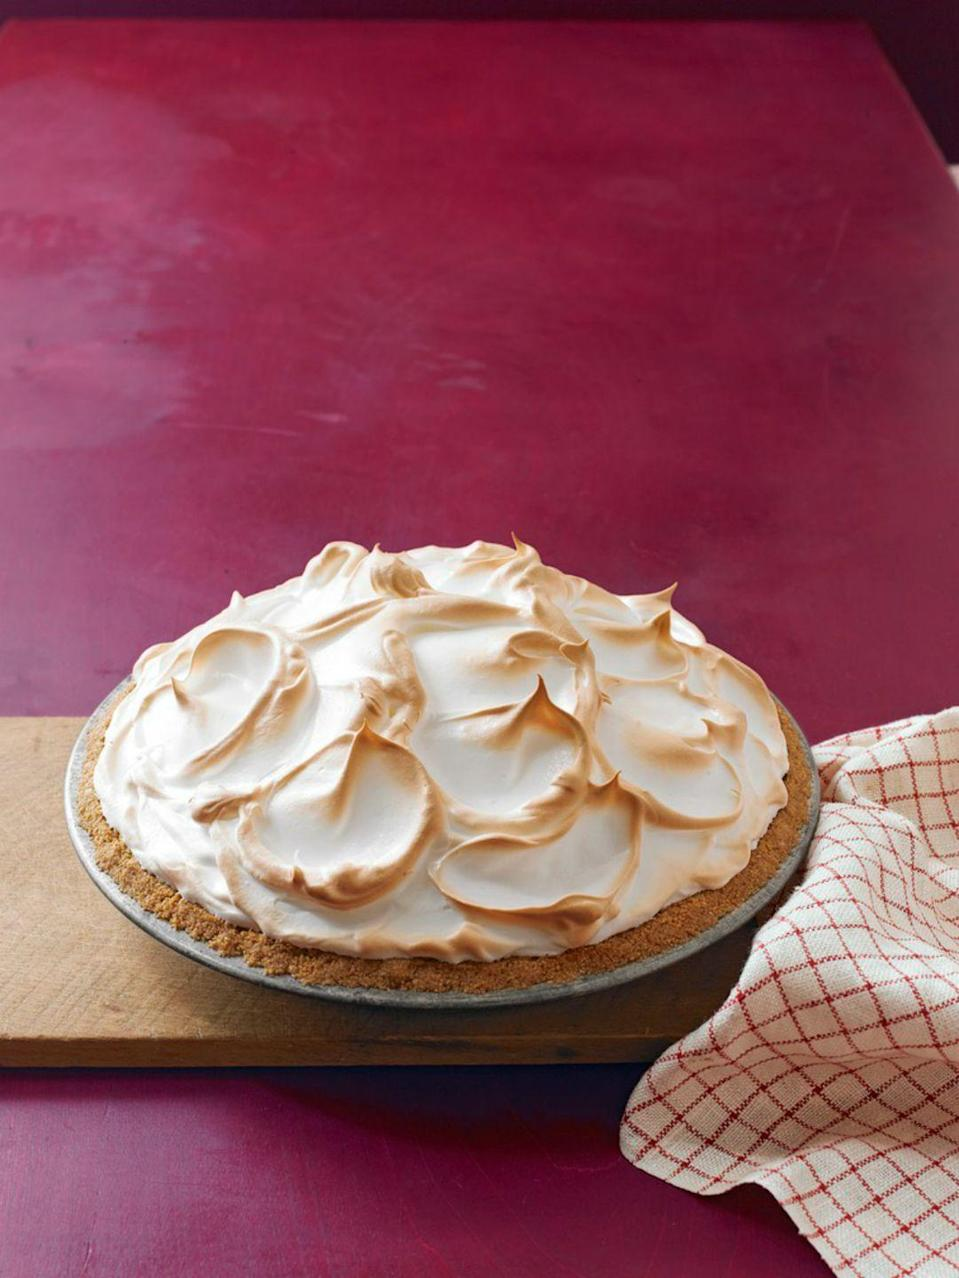 "<p>The nutty notes and butterscotch flavor in this meringue pie are sure to send guests into a sweet, sweet food coma. </p><p><a href=""https://www.womansday.com/food-recipes/food-drinks/recipes/a12082/browned-butter-butterscotch-meringue-pie-recipe-wdy1112/"" rel=""nofollow noopener"" target=""_blank"" data-ylk=""slk:Get the Browned Butter Butterscotch Meringue Pie recipe."" class=""link rapid-noclick-resp""><strong><em>Get the Browned Butter Butterscotch Meringue Pie recipe. </em></strong> </a></p><p><strong><strong>What You'll Need</strong></strong><strong><strong>:</strong></strong> <a href=""https://www.amazon.com/USA-Pan-Patriot-Bakeware-Aluminized/dp/B019ZDZIT0"" rel=""nofollow noopener"" target=""_blank"" data-ylk=""slk:Pie Pan"" class=""link rapid-noclick-resp"">Pie Pan </a>($25, Amazon)</p>"